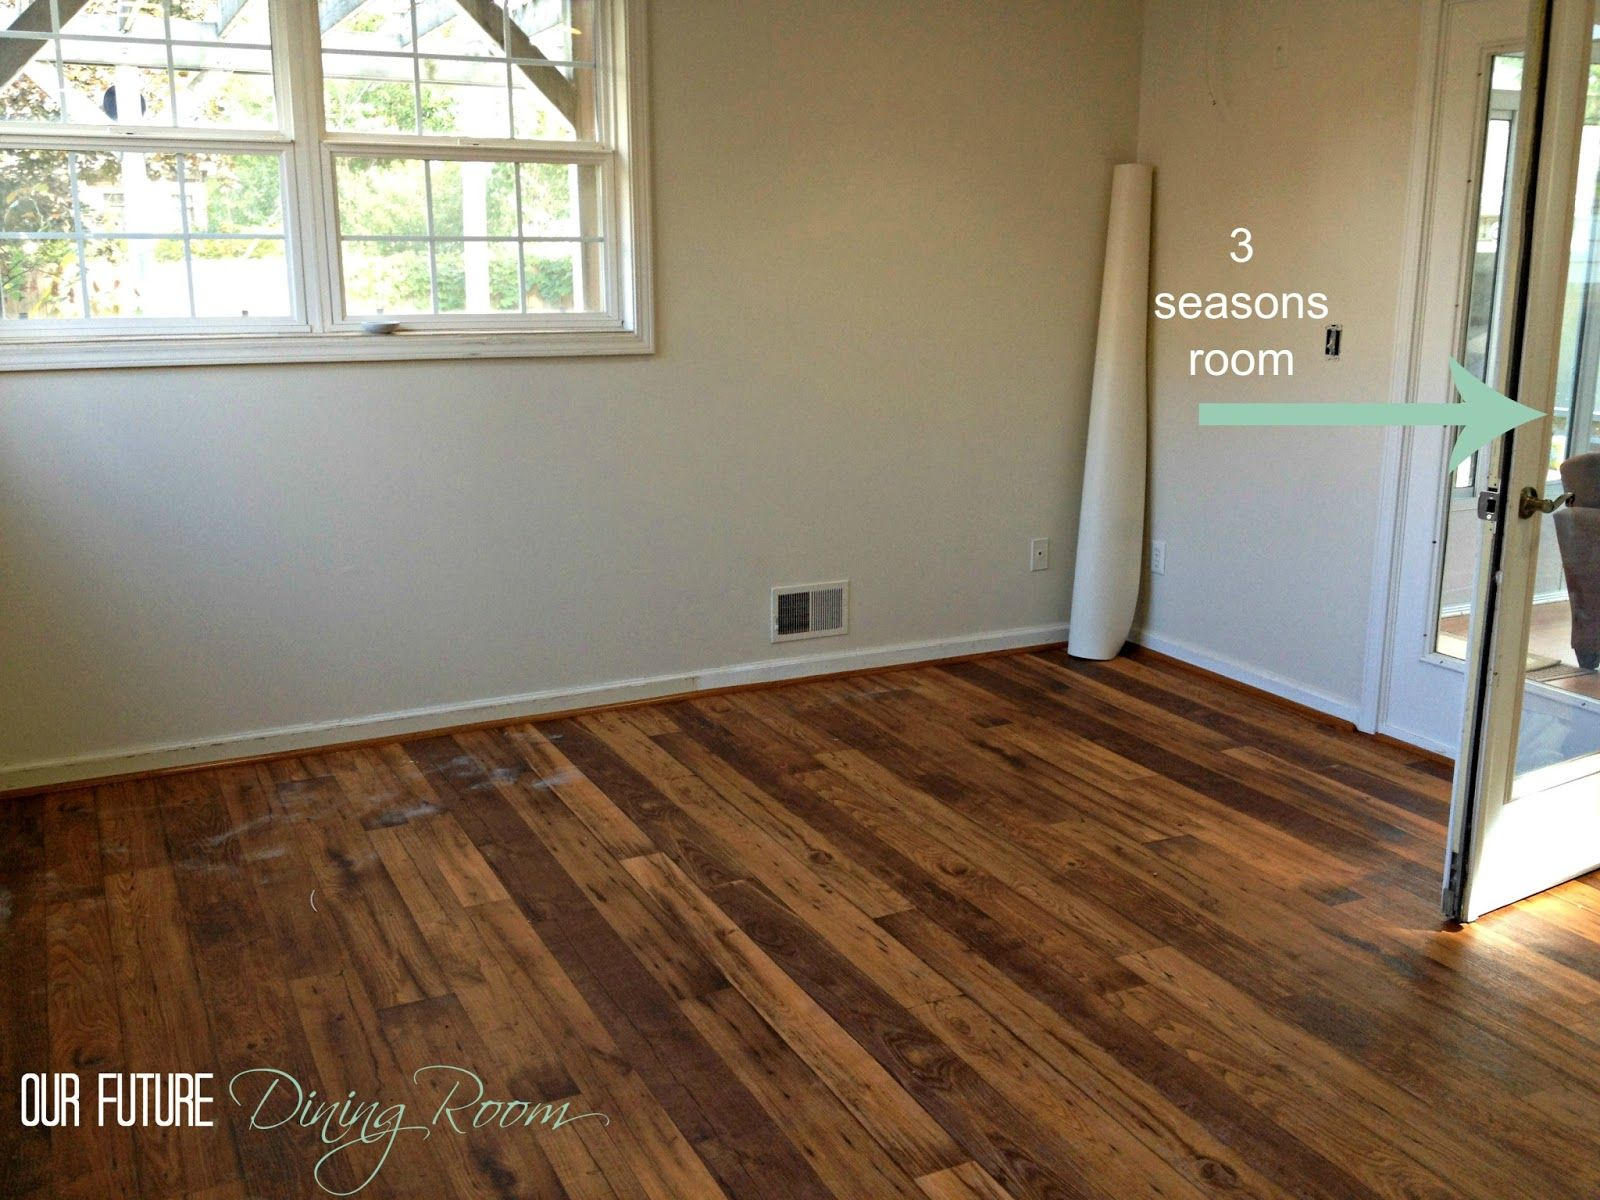 Linoleum wood flooring faux hardwood we went with a for Wooden floor lino